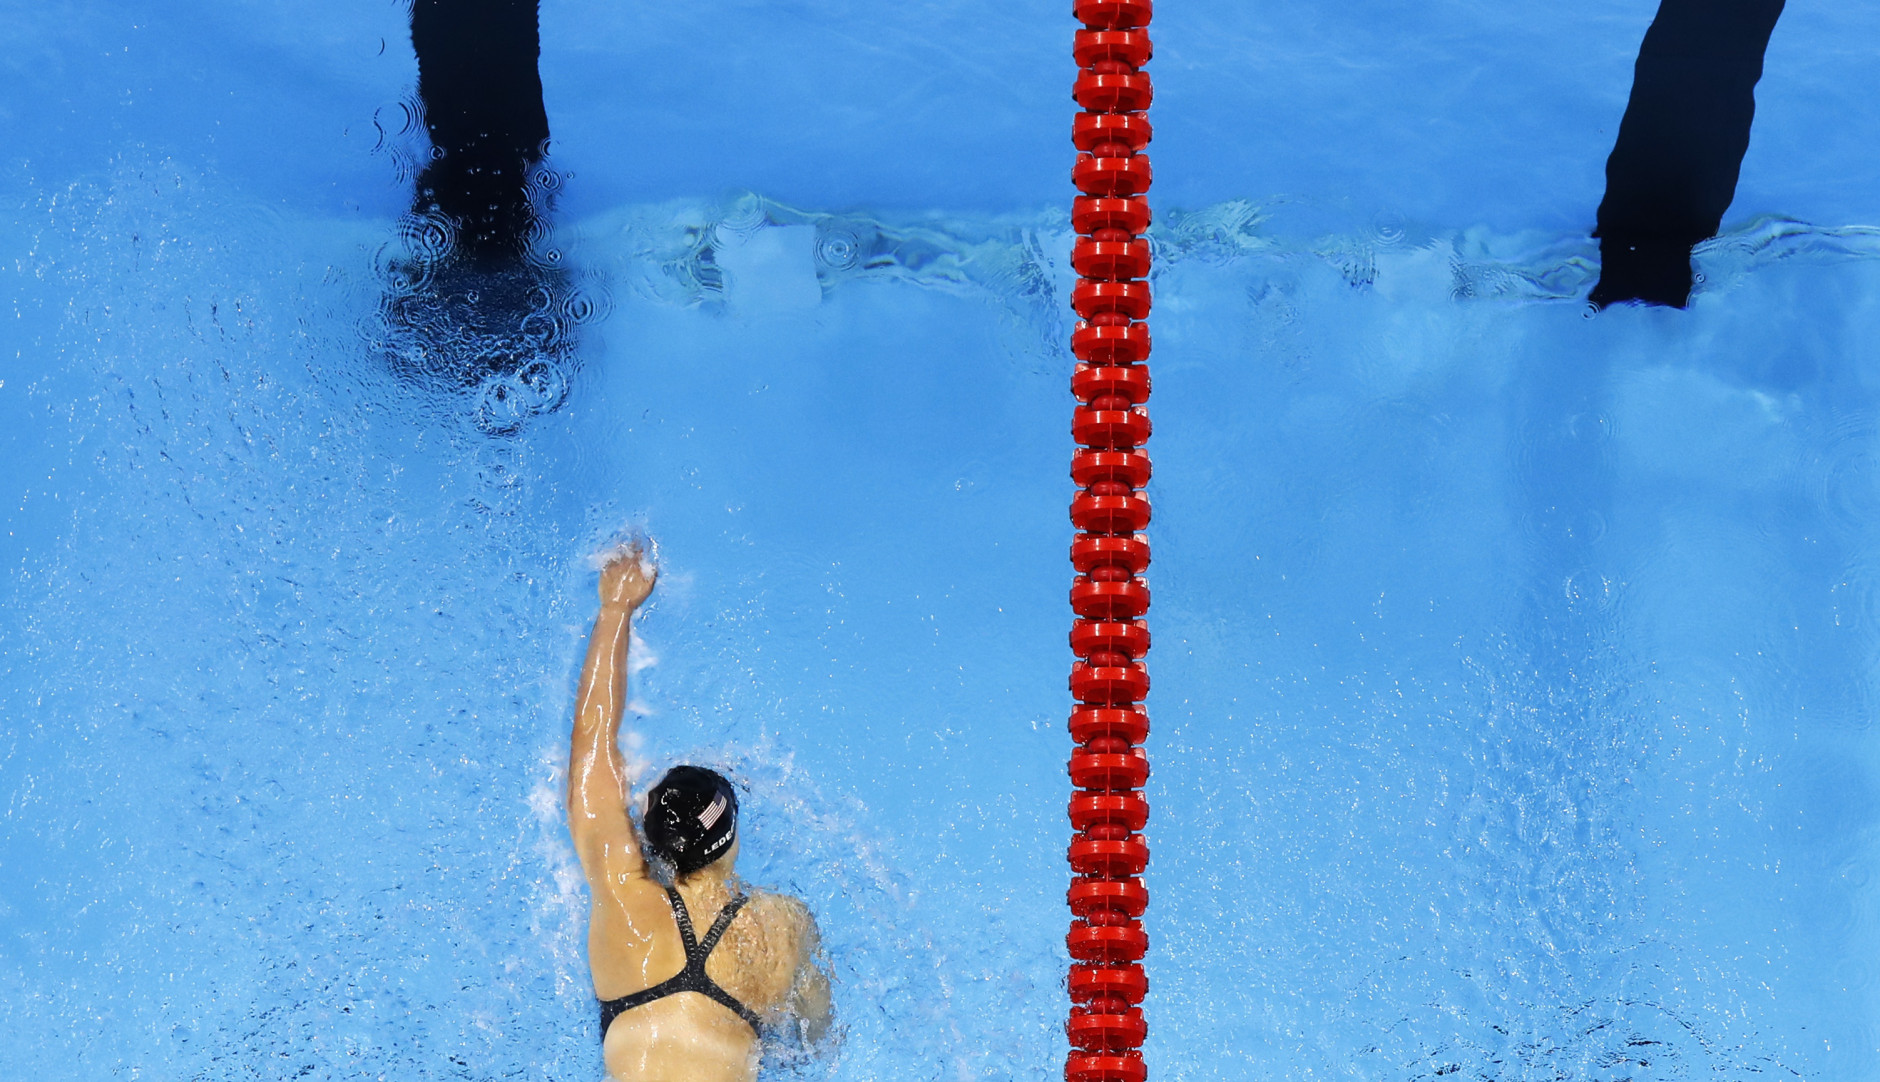 United States' Katie Ledecky heads to the finish in the 4 x 200m freestyle relay finals during to the swimming competitions at the 2016 Summer Olympics, Thursday, Aug. 11, 2016, in Rio de Janeiro, Brazil. (AP Photo/Morry Gash)